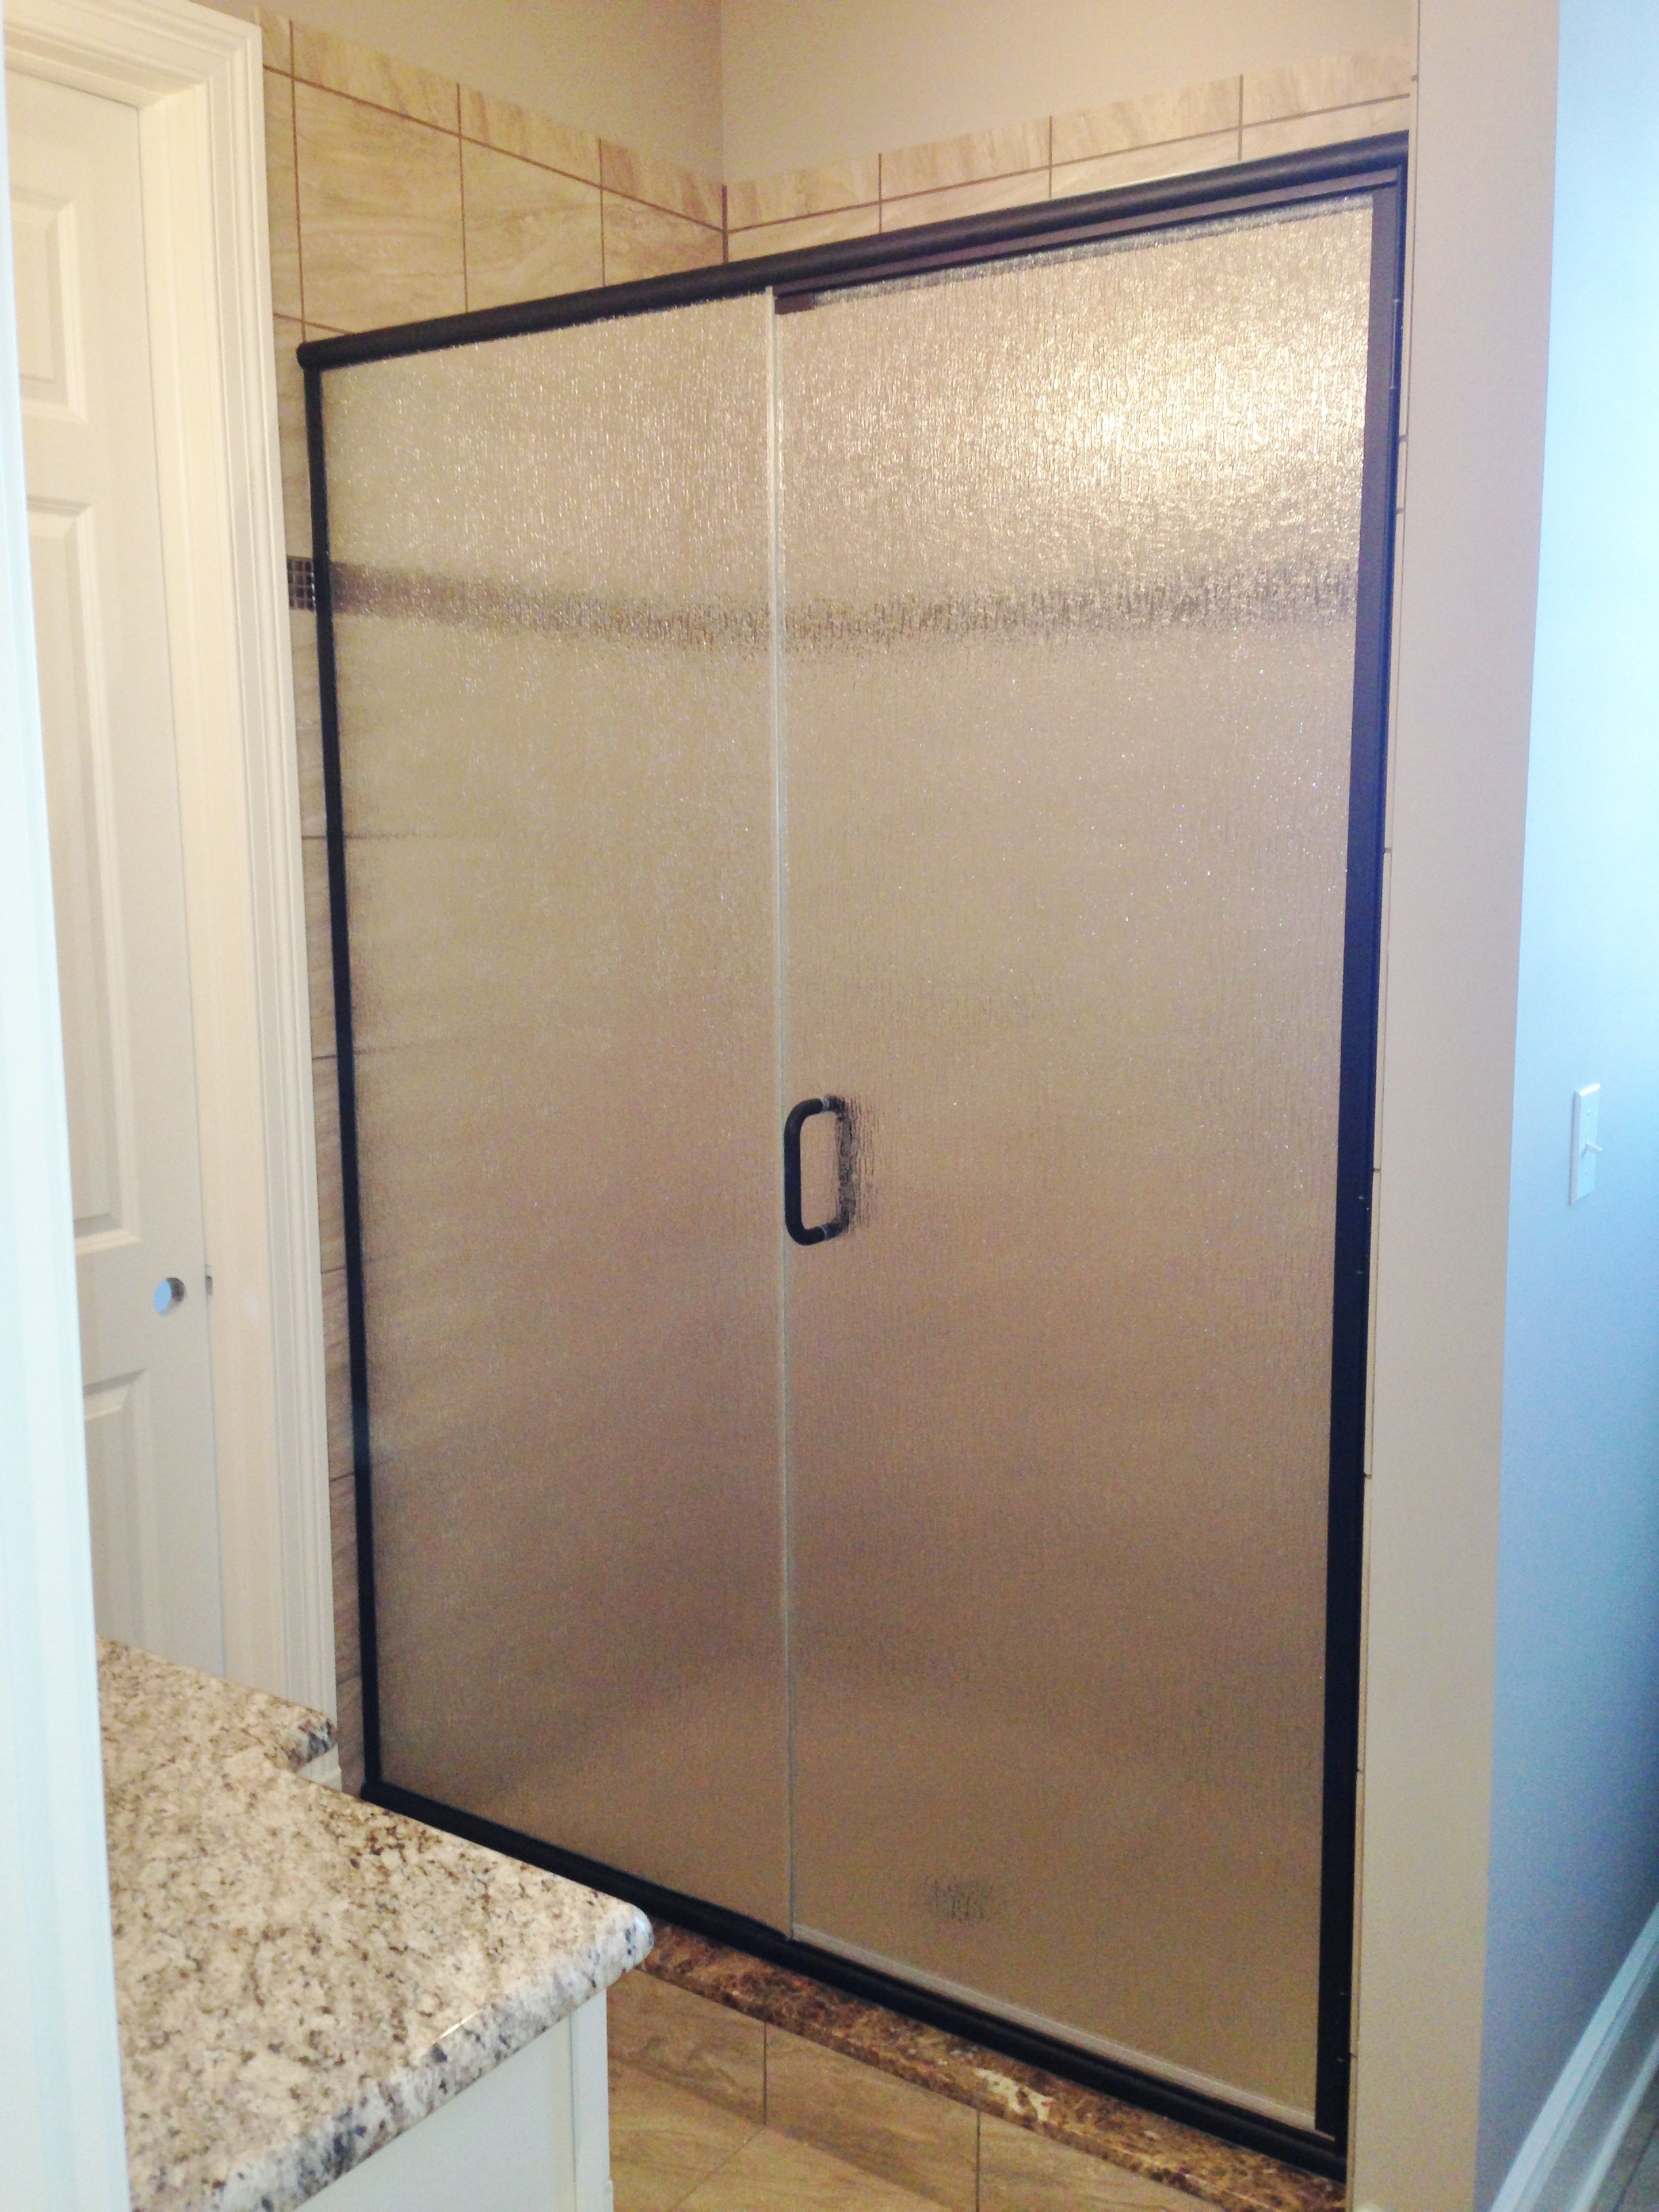 doors angle frameless img wm neo thick with glass semi image door shower